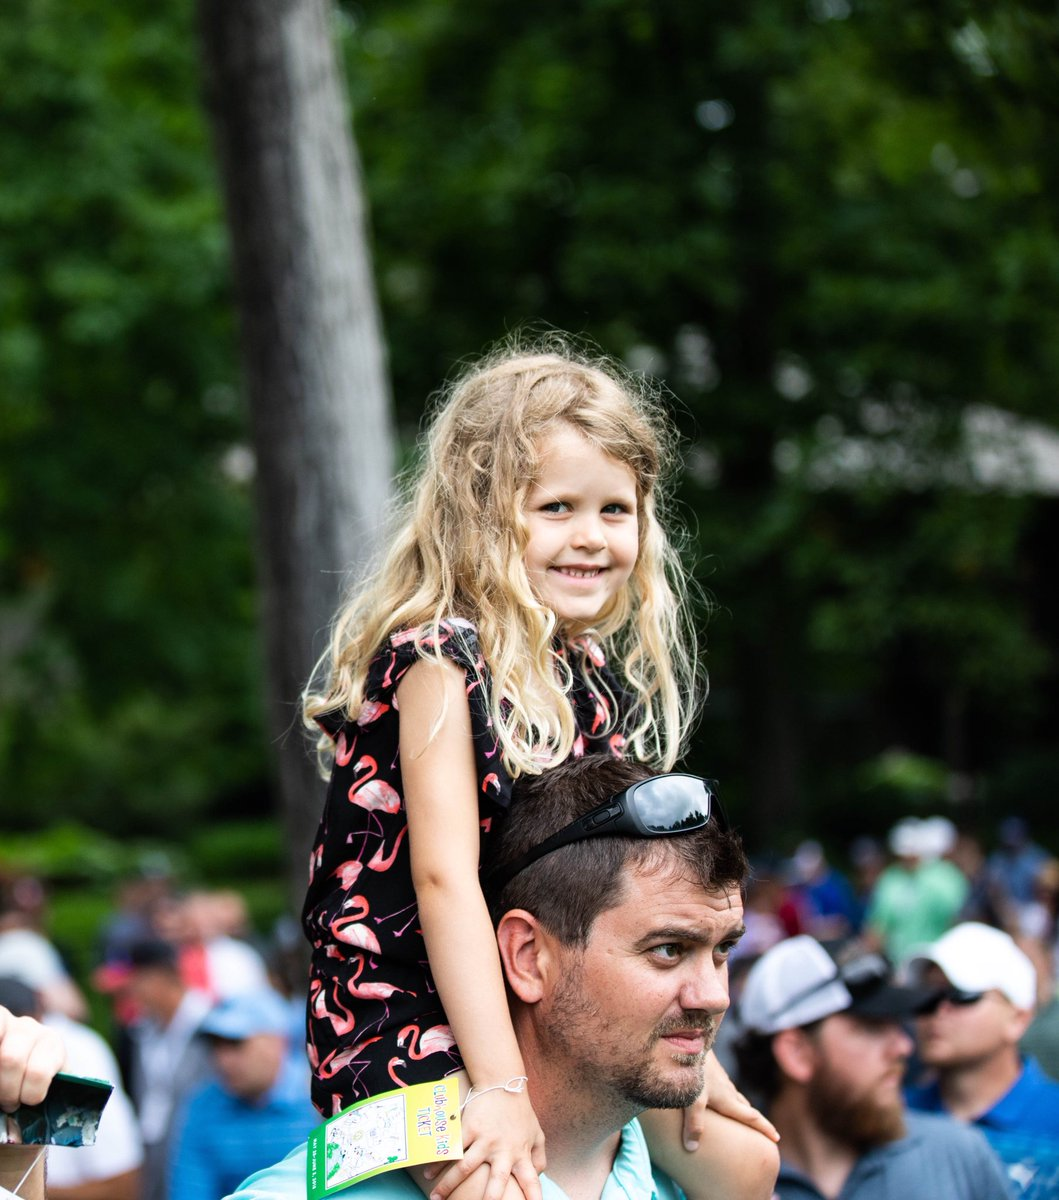 Making memories with Dad at #theMemorial is the best! Thanks to all the Dads out there for sharing your love of the game with your kids! Happy #FathersDay!